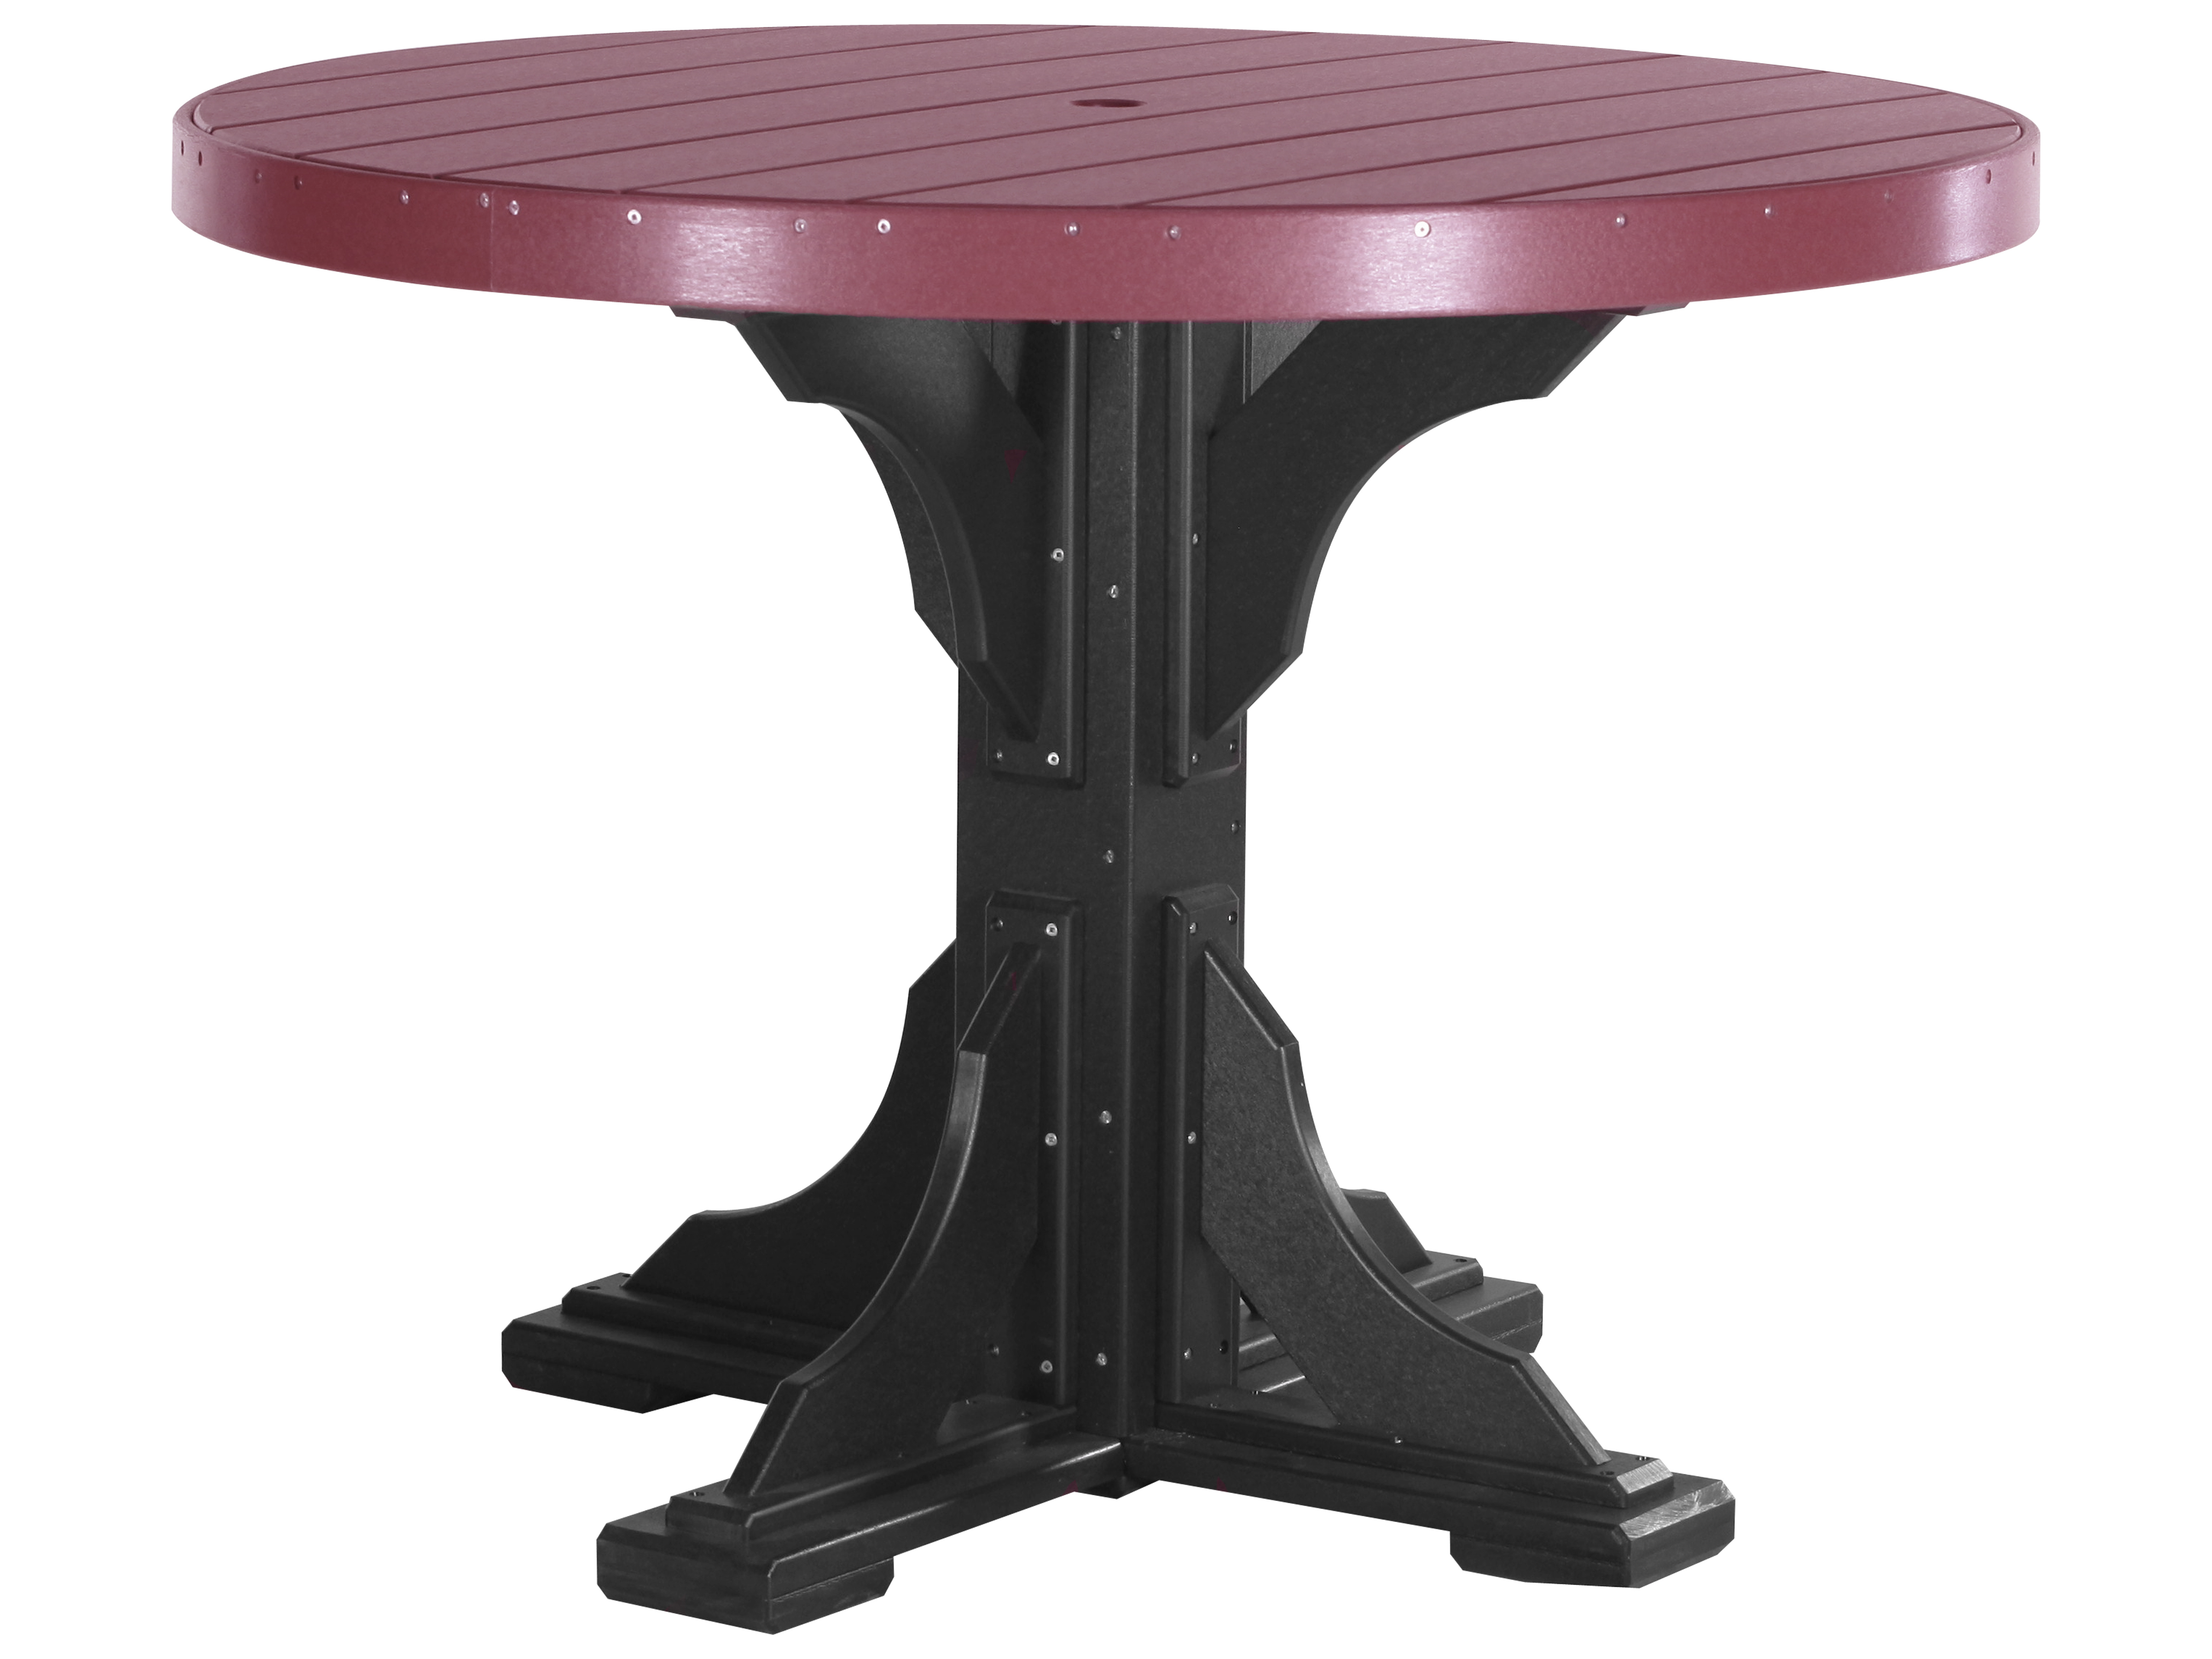 Luxcraft recycled plastic 48 round counter height table - Picnic table with umbrella hole ...